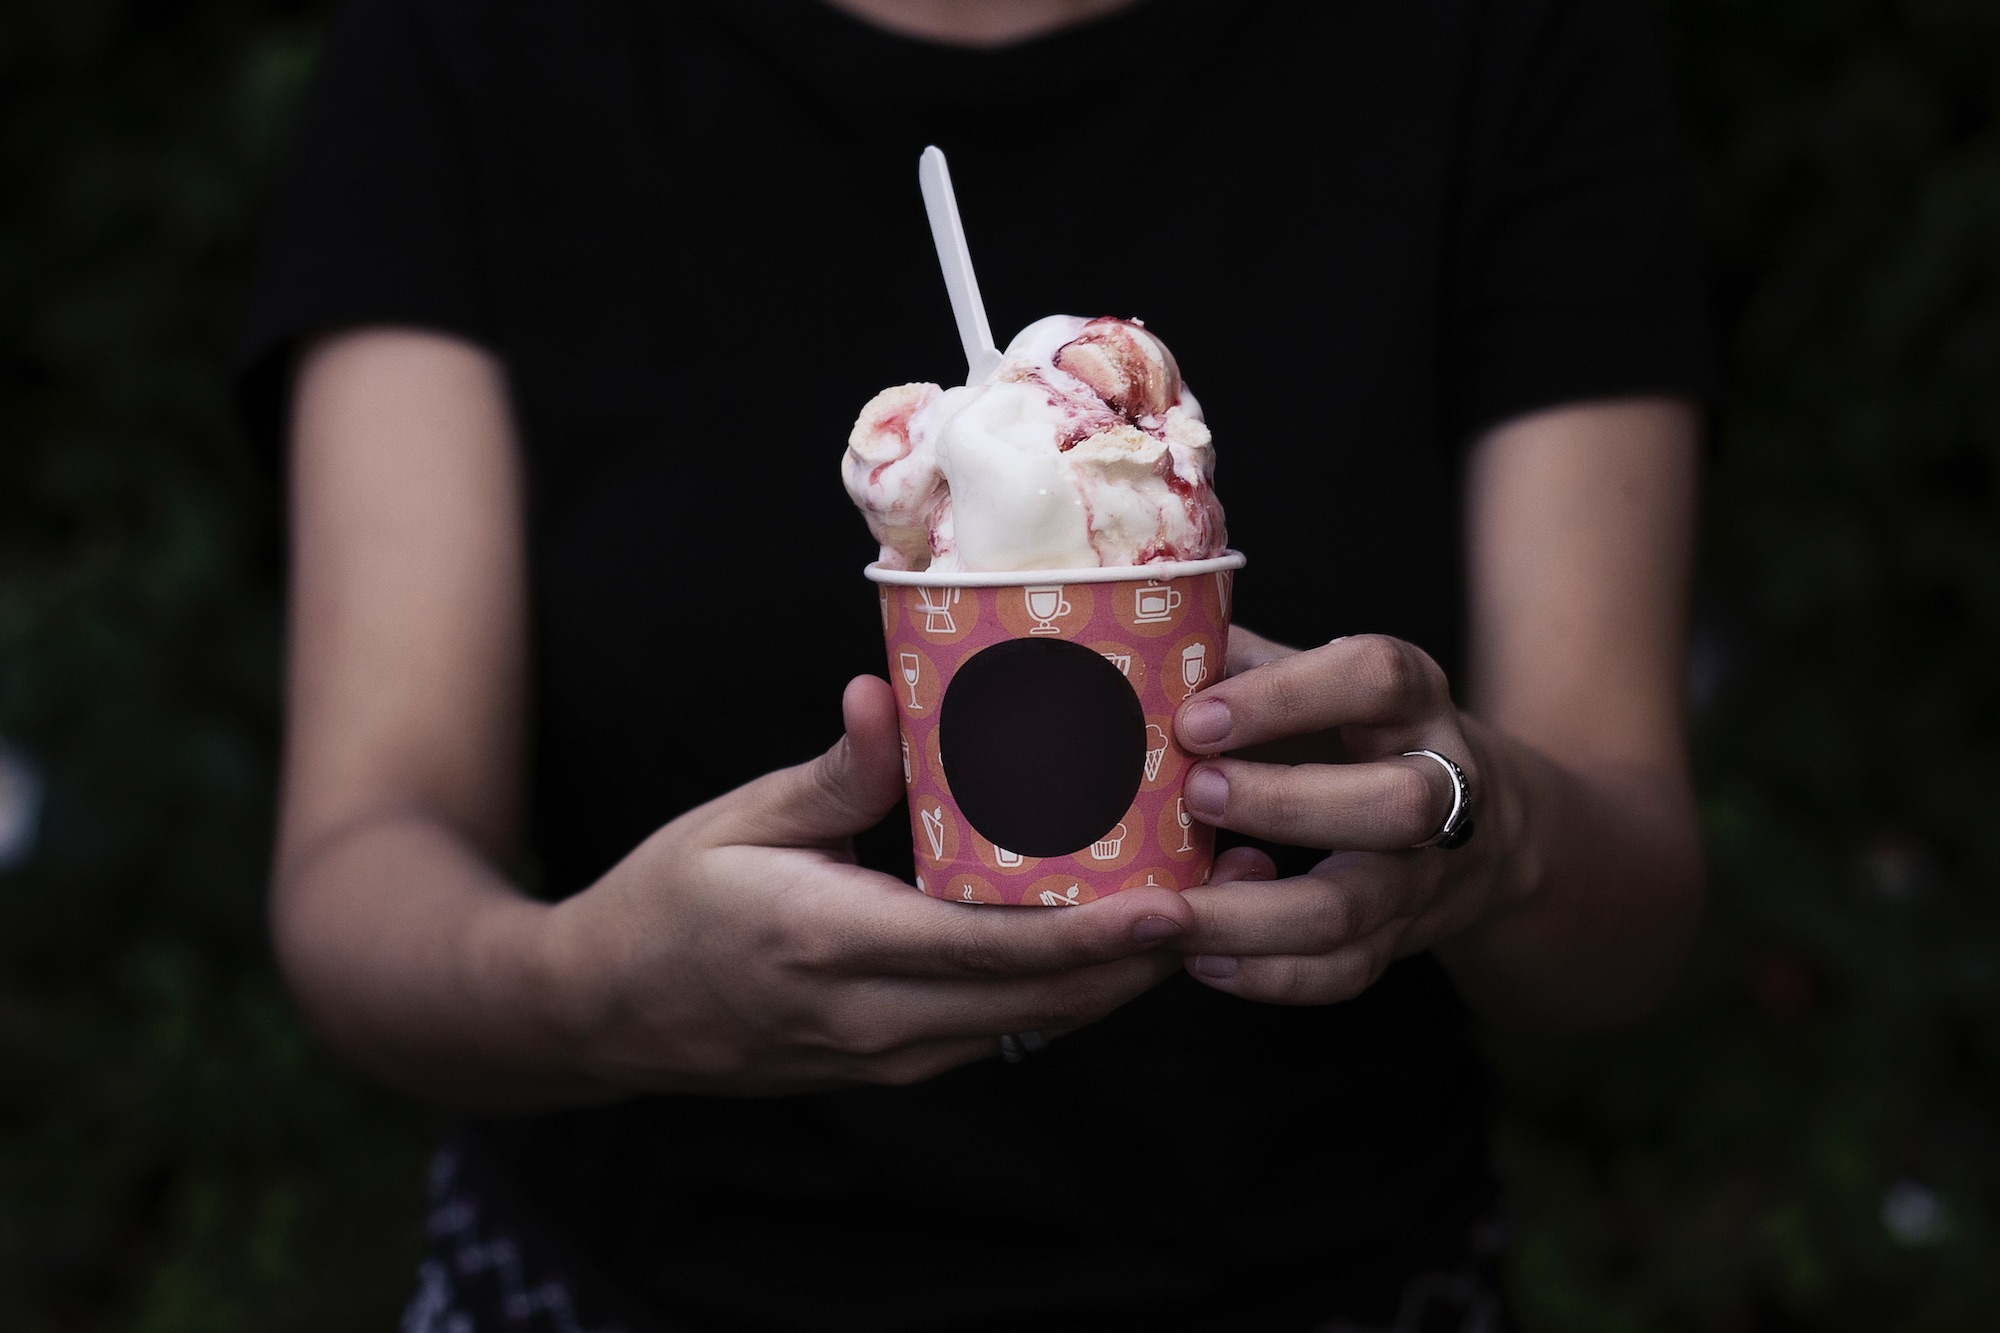 A Brief Look at the Differences Between Ice Cream and Gelato